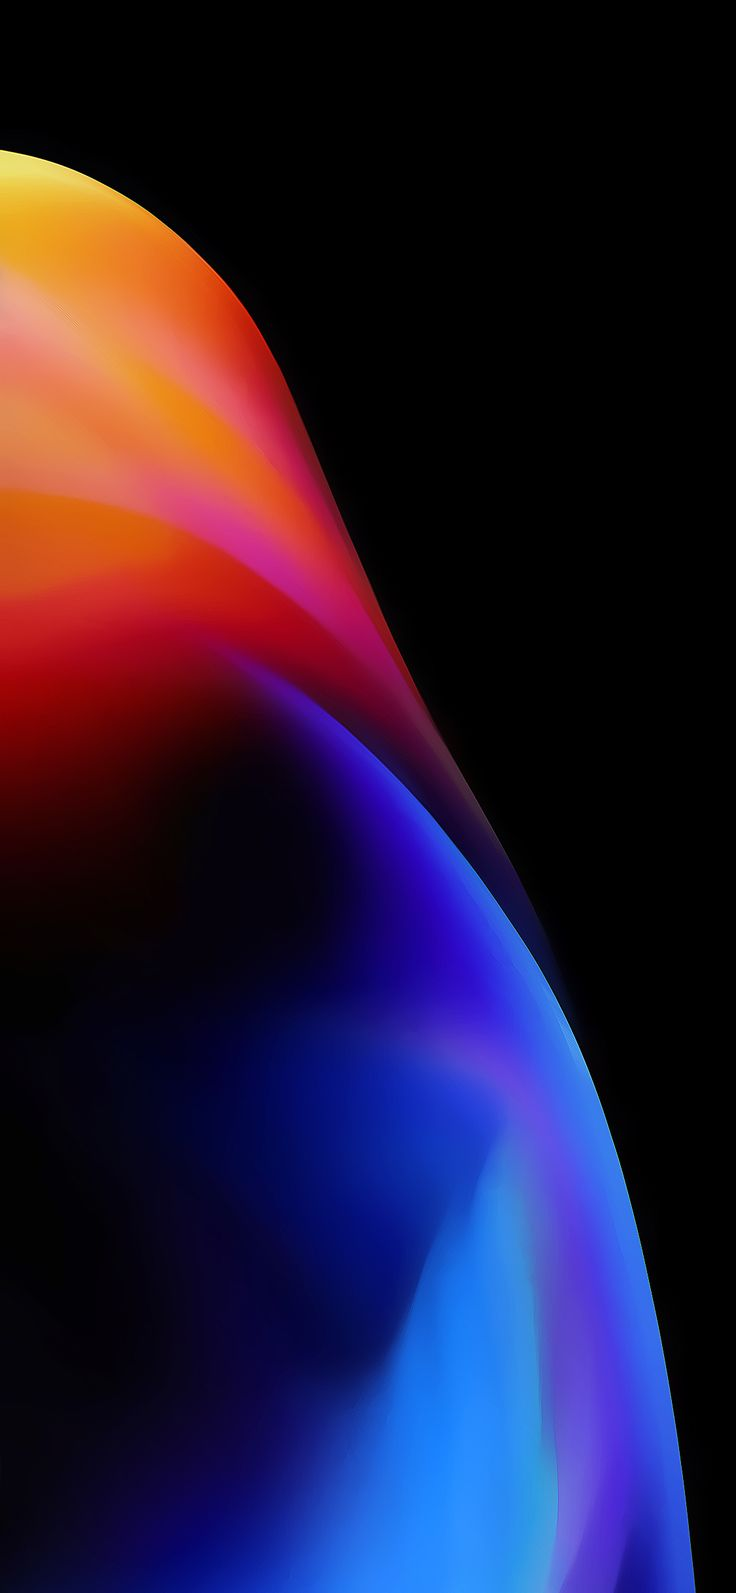 27 Best IOS 12 Stock Wallpapers Concept Images On